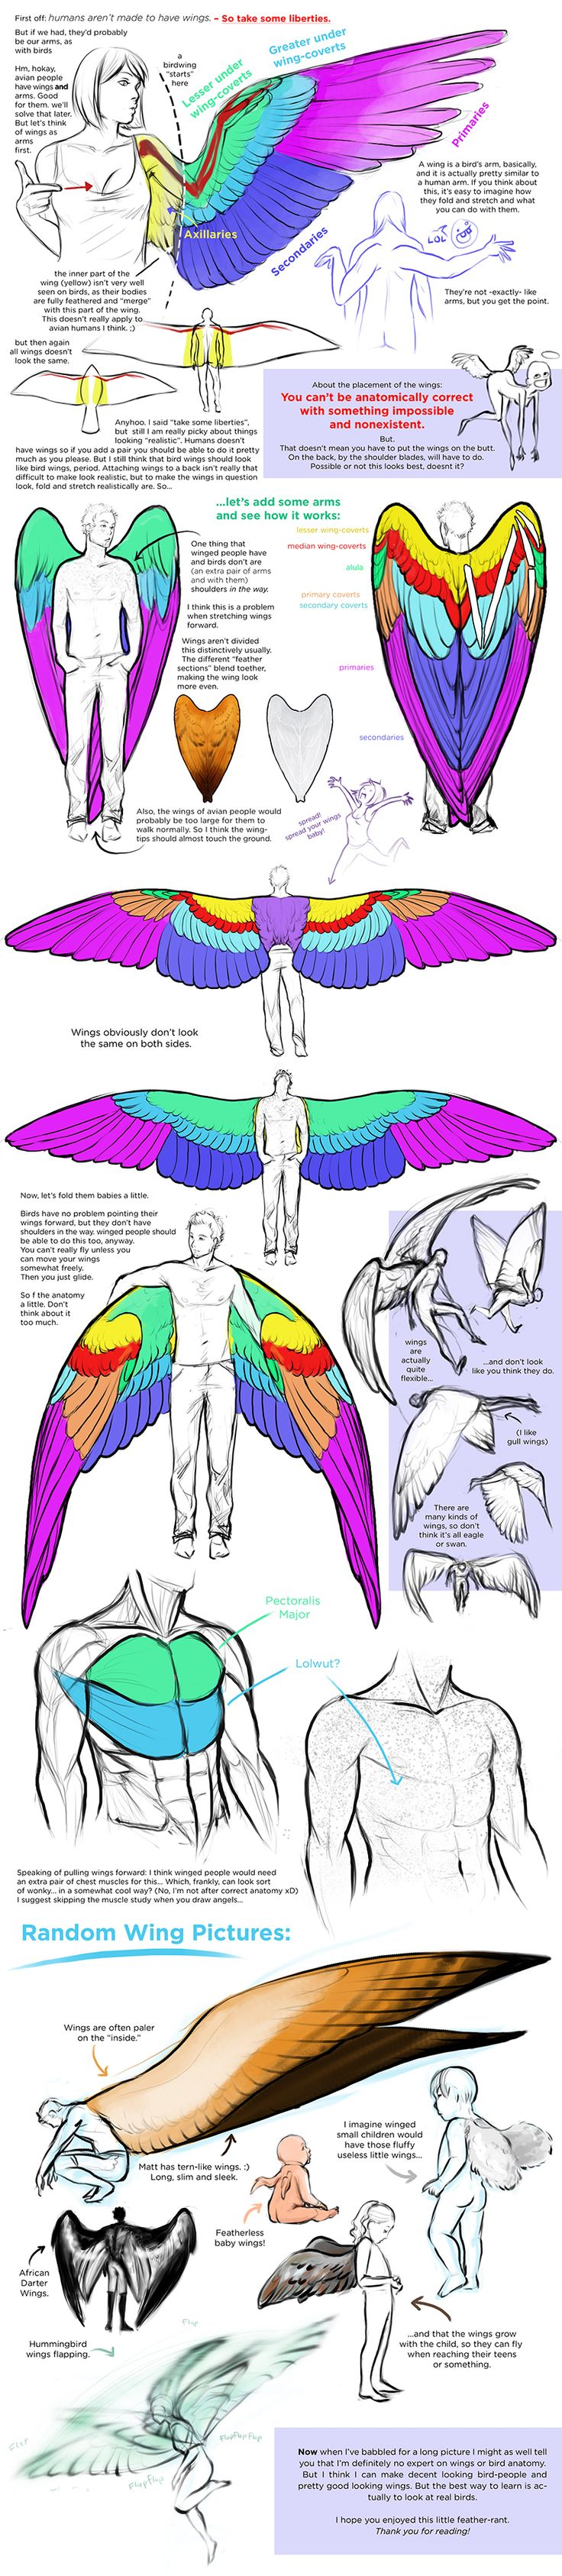 手机壳定制latest jordans retro the quot correct quot anatomy of wings on people This is amazing